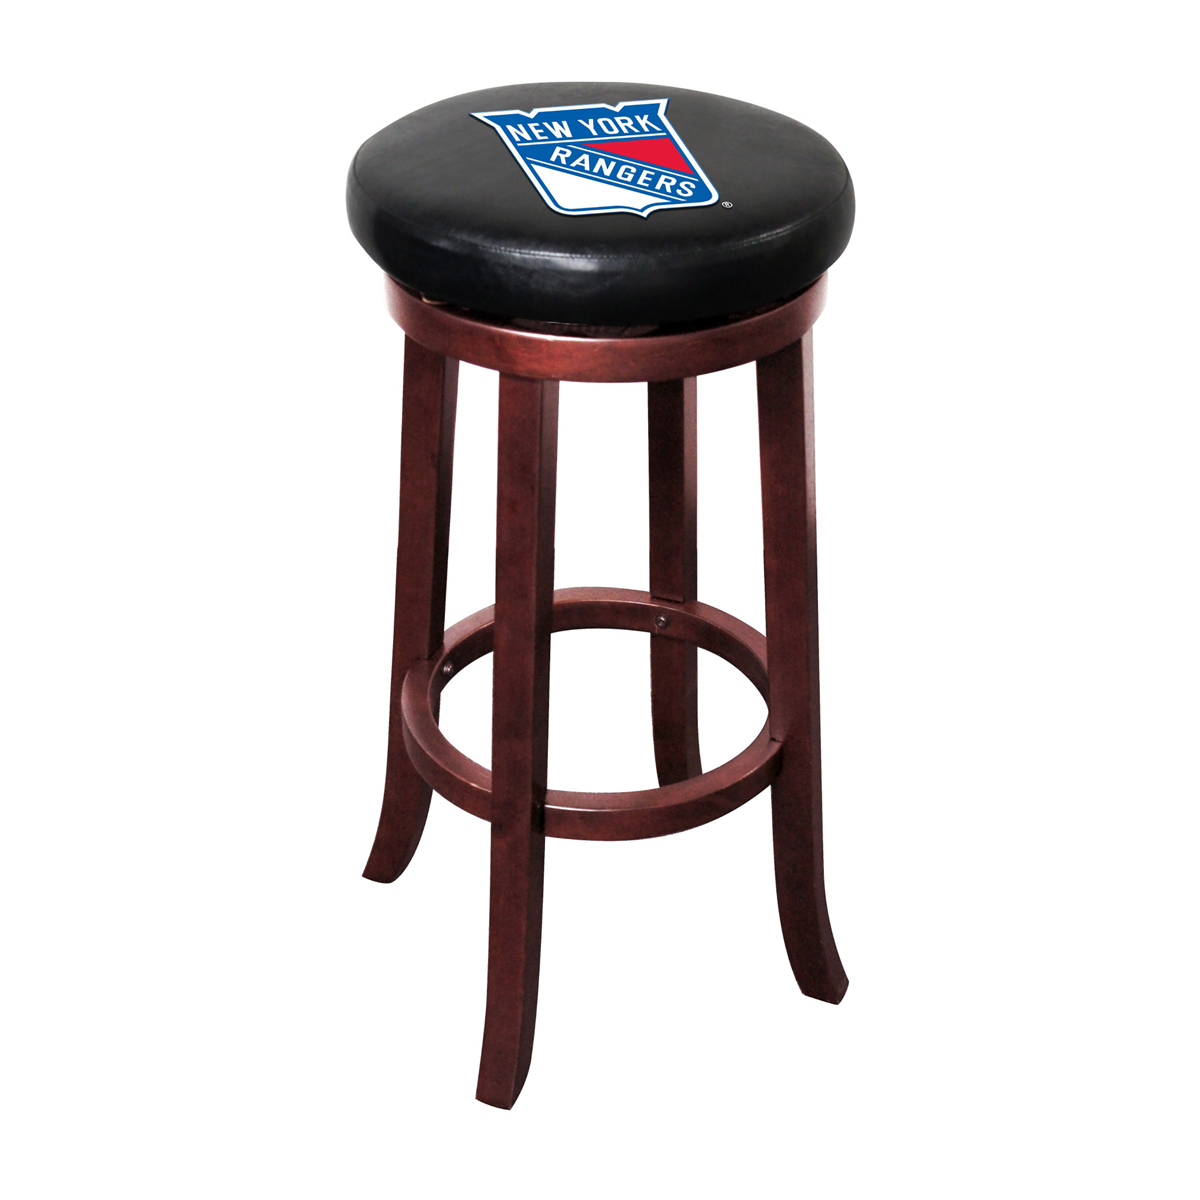 NEW YORK RANGERS® WOOD BAR STOOL